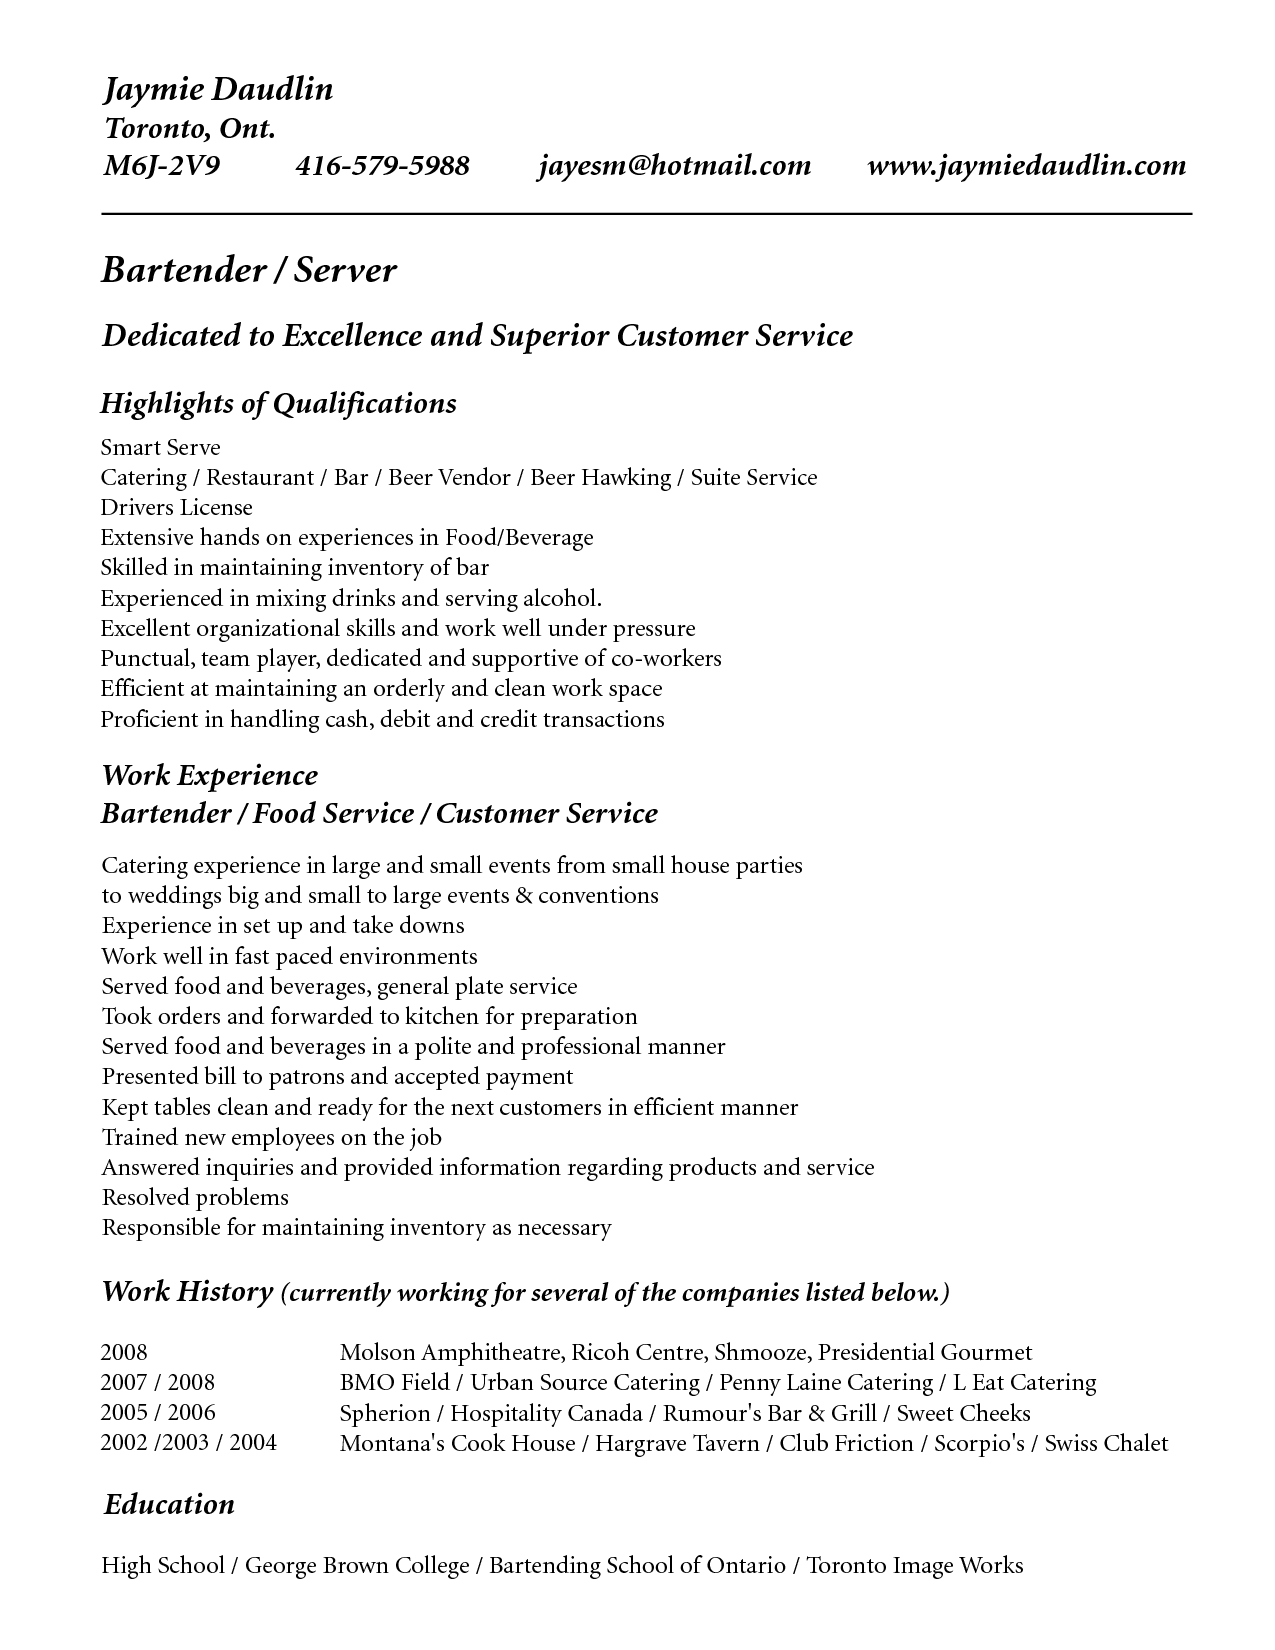 Resume Template For Bartender No Experience - http://www.resumecareer.info